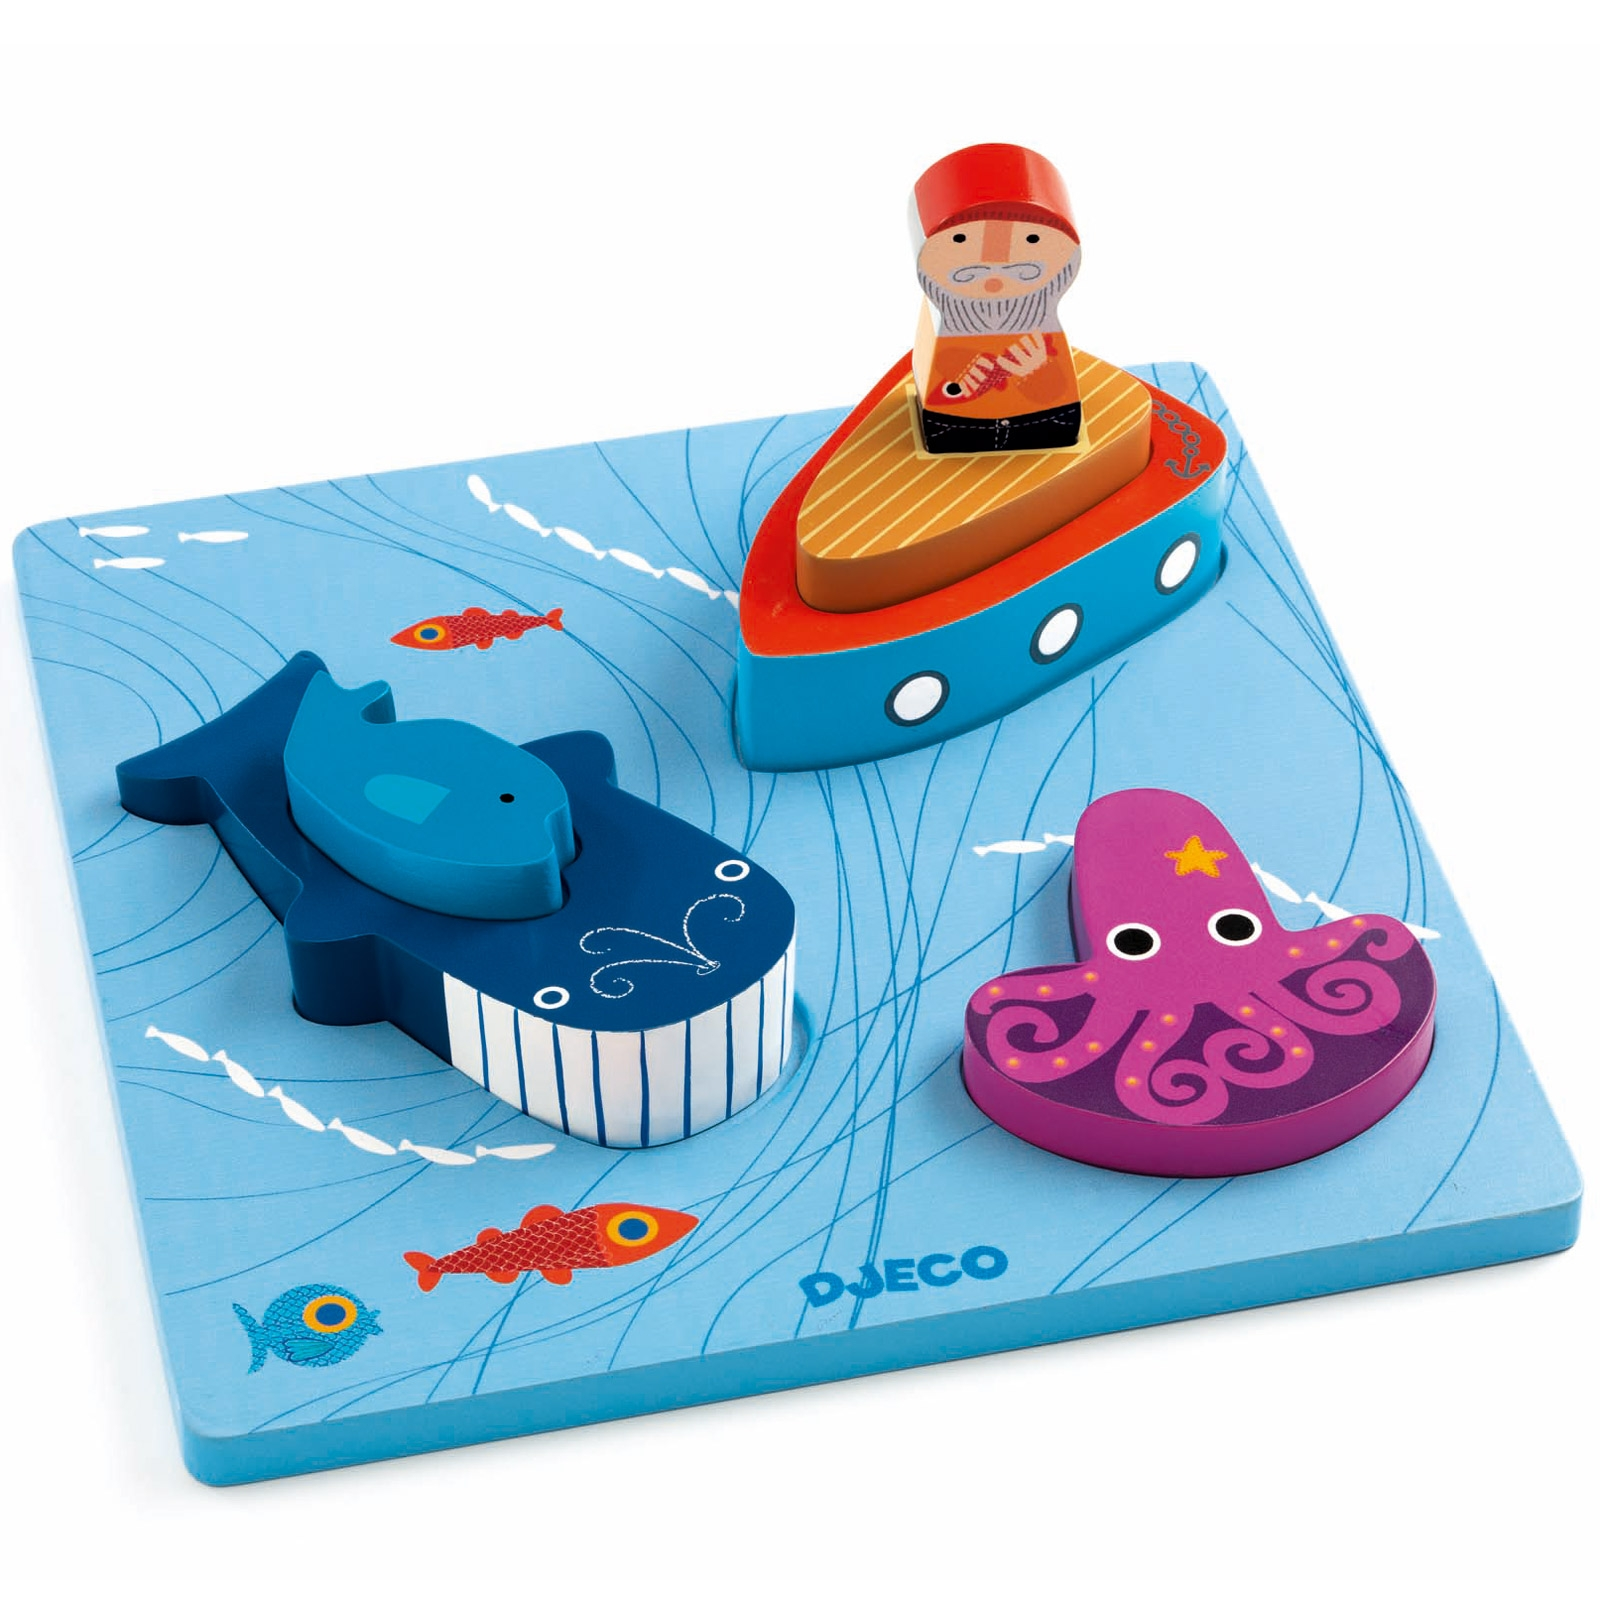 Relief puzzles - 123 Moby